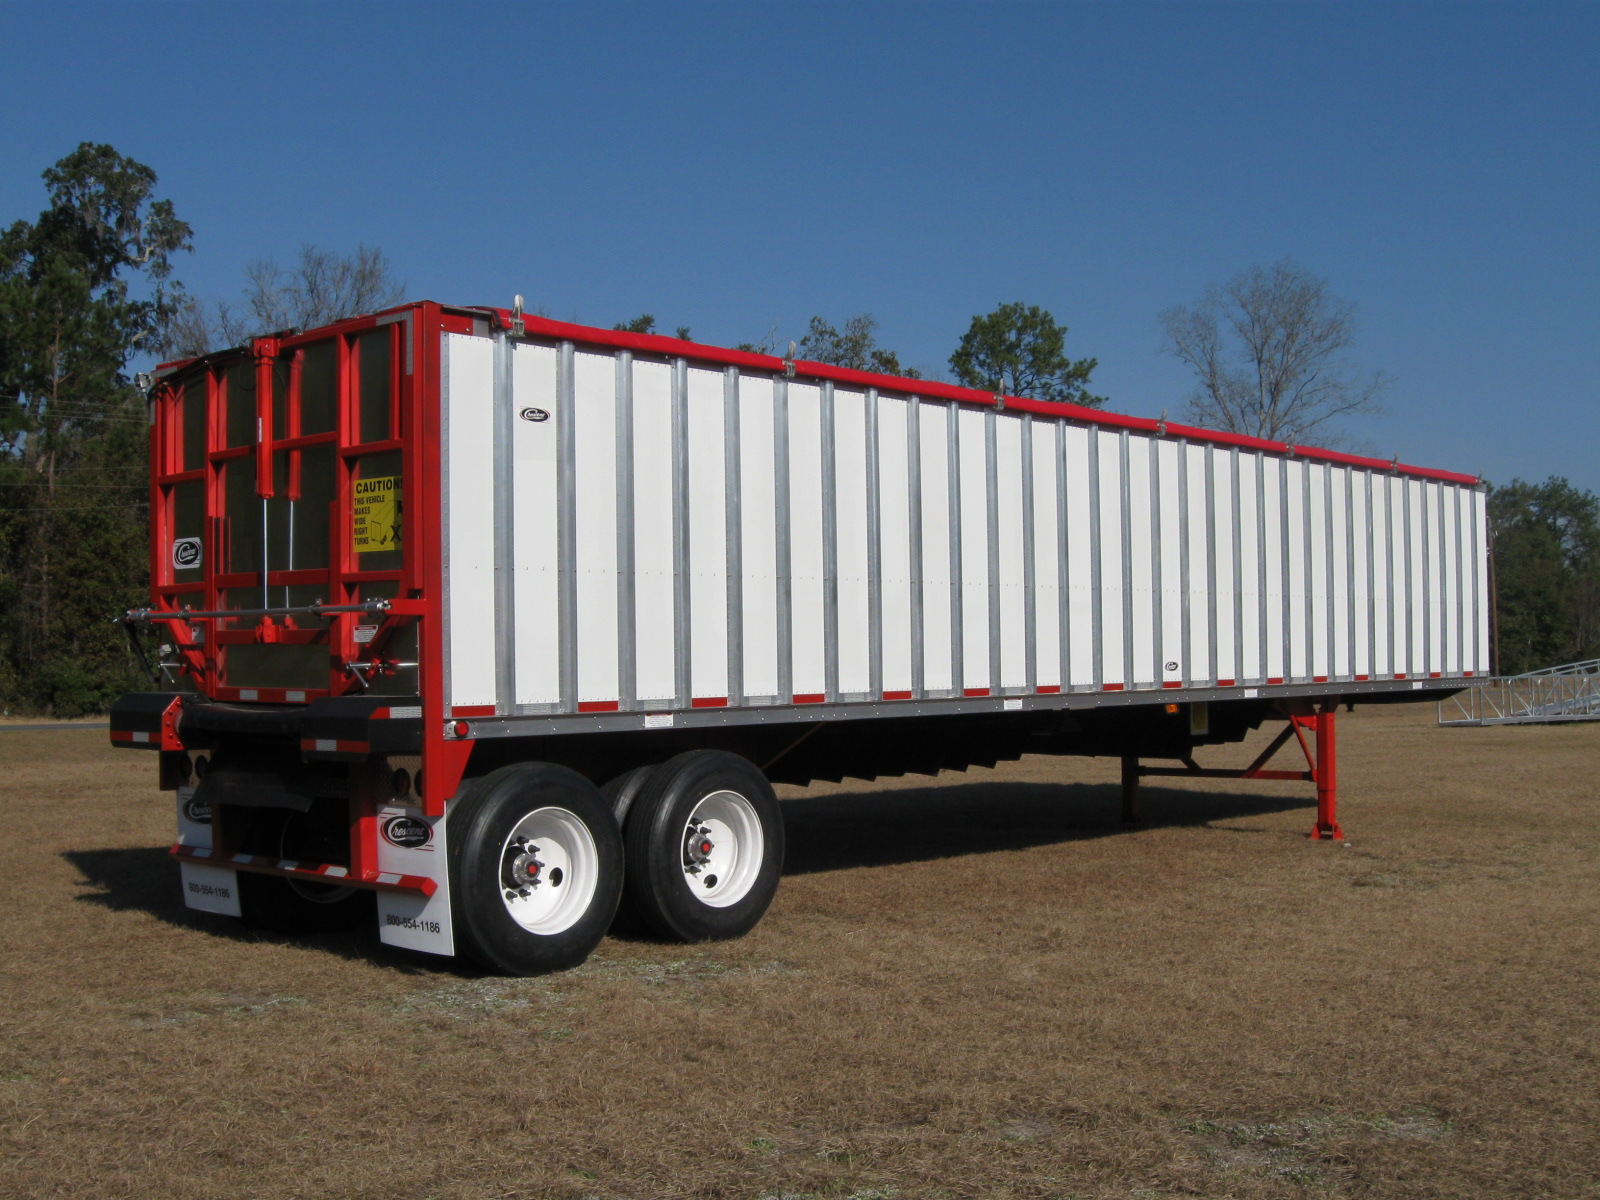 Used Tractor Trailers : Used commercial trucks heavy duty tractor trailers for